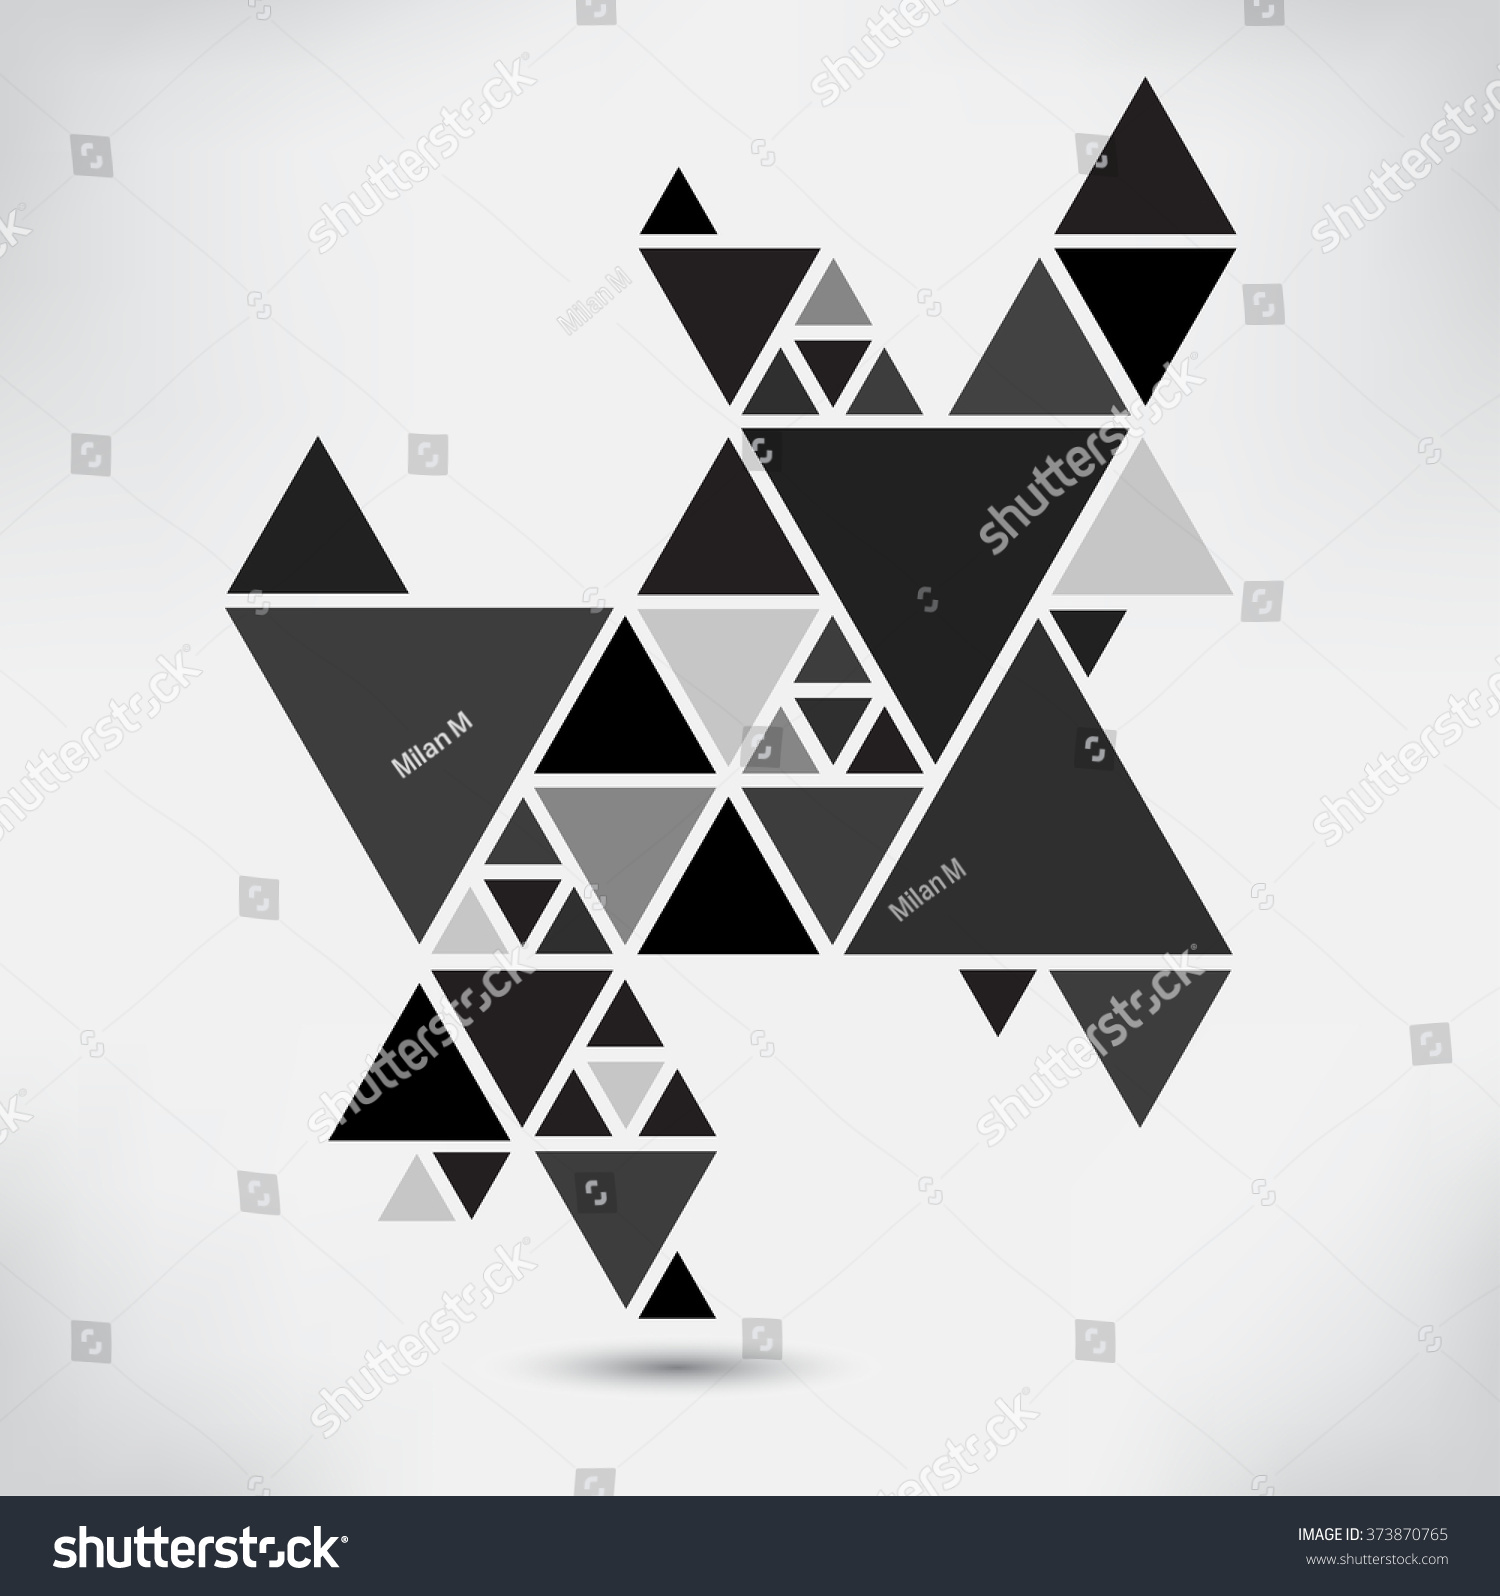 Abstract geometric backgroundvector triangle background for Triangle concept architecture